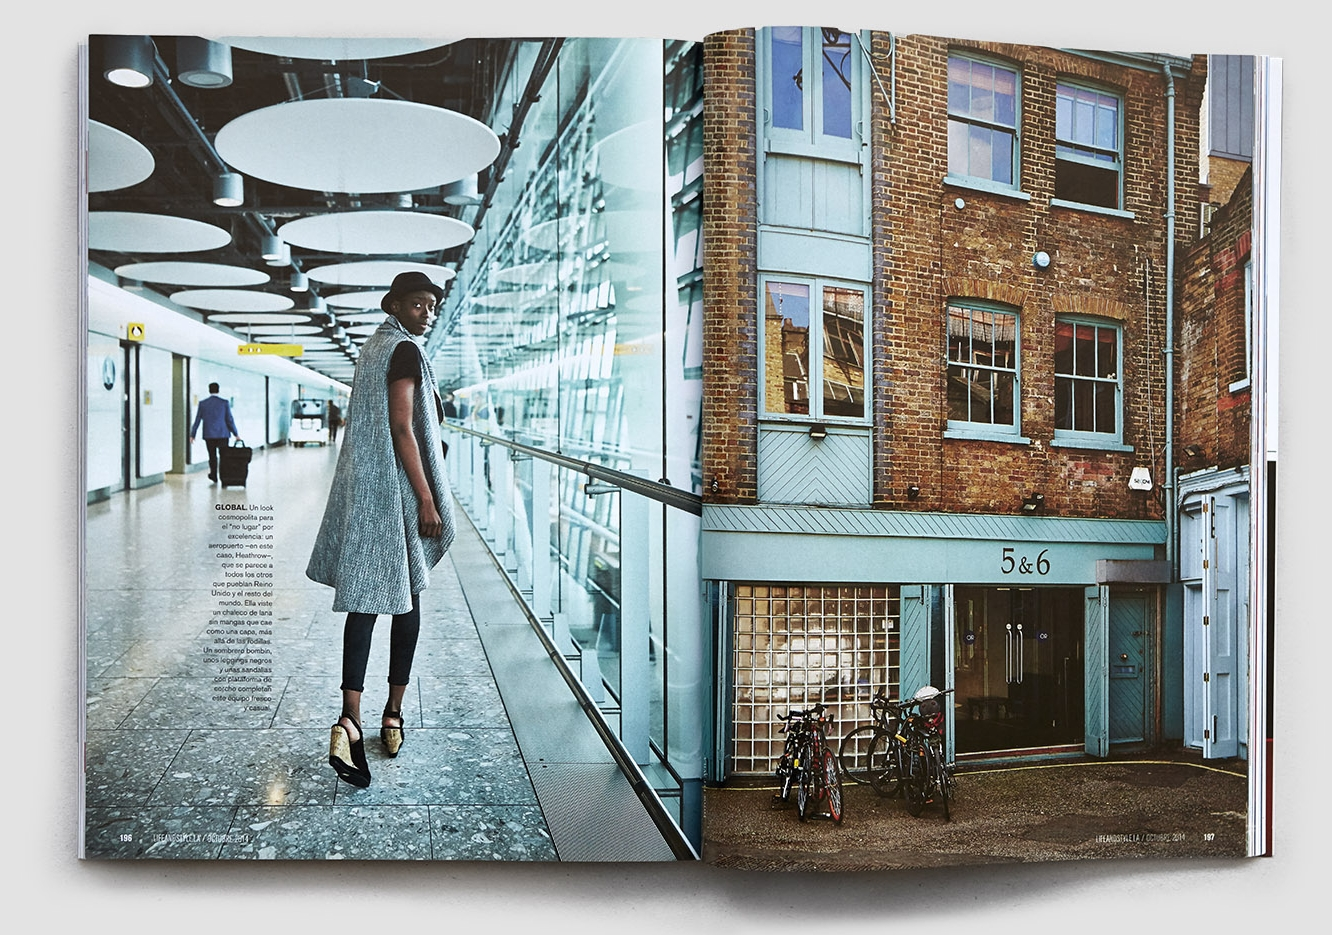 LIFE & STYLE MAGAZINE - 7 PORTRAITS FROM LONDON